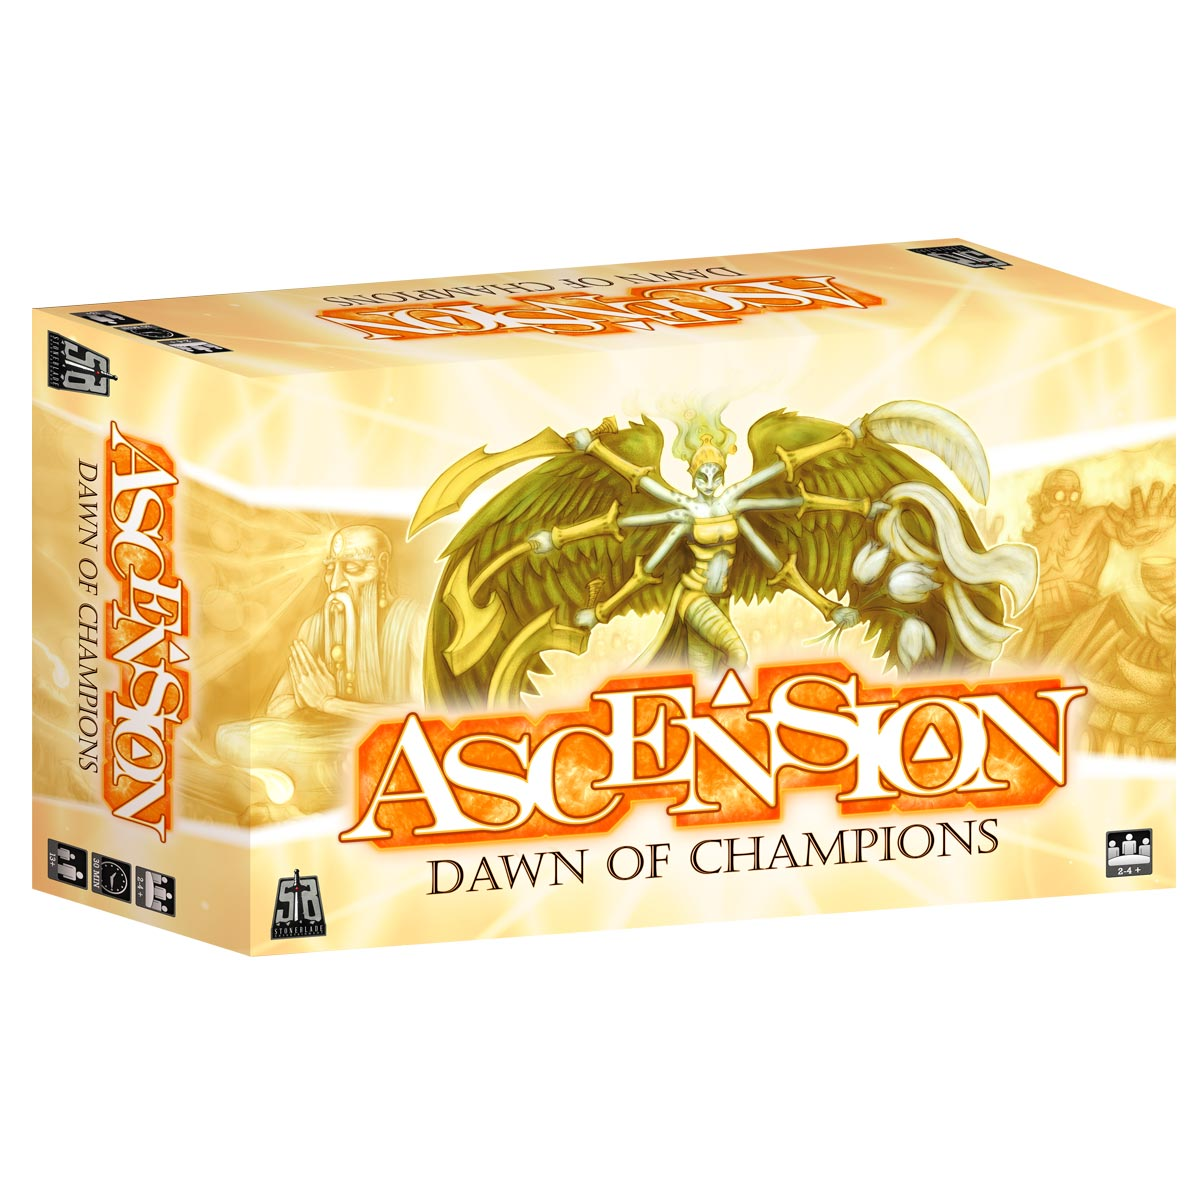 Game Review – Ascension, Dawn of Champions